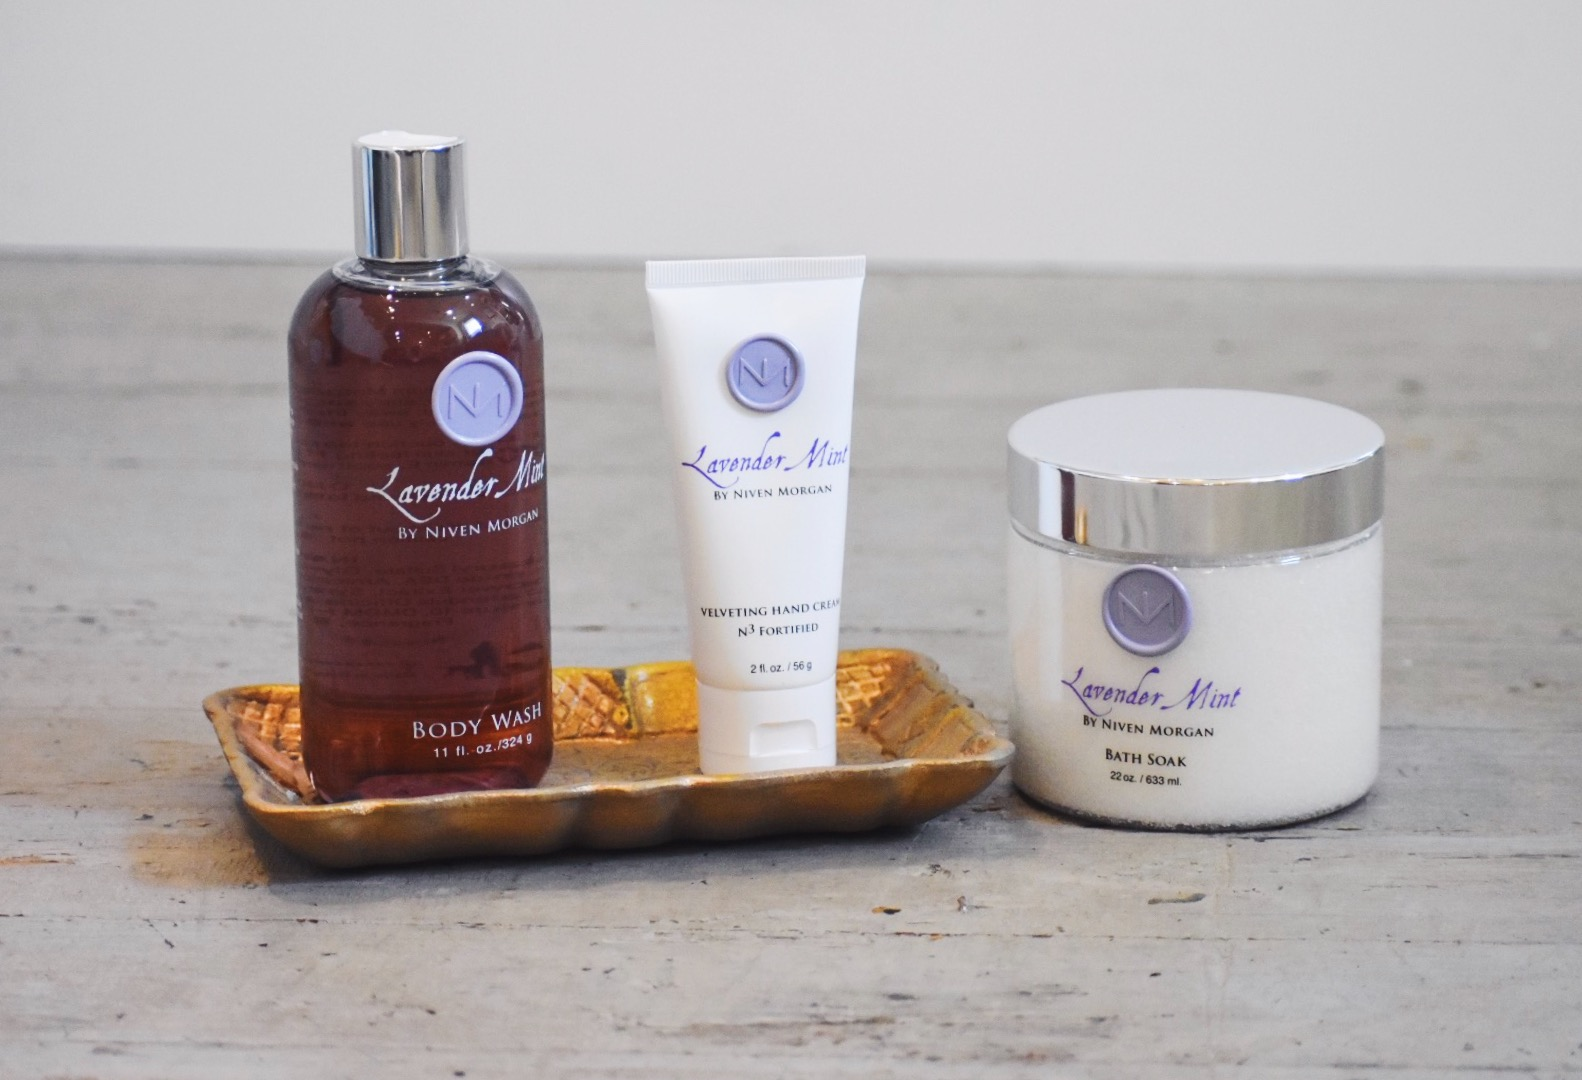 Spa Day! Treat your bestie, mom, or whoever to some great products to create the perfect at-home spa day! -